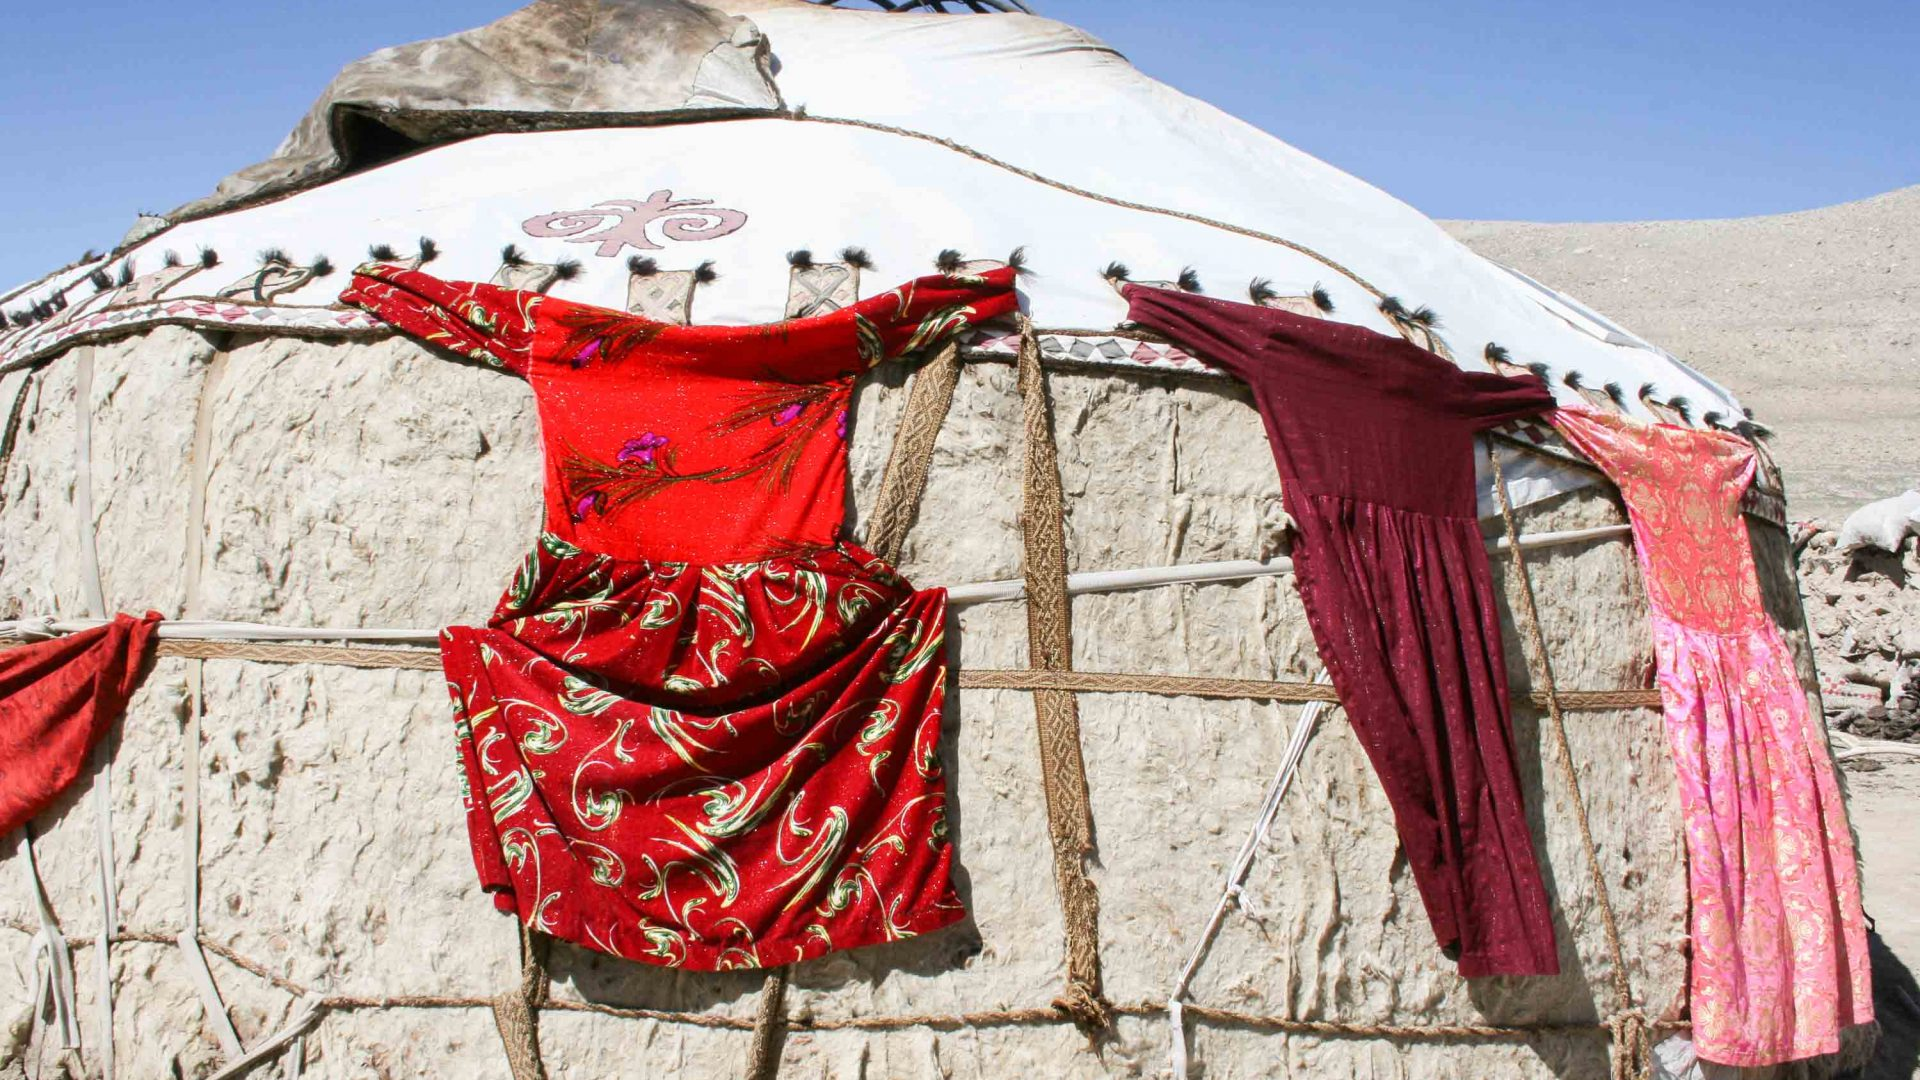 The brightly colored traditional clothes of the women from the Wakhan hang out to dry on the wall of a yurt.